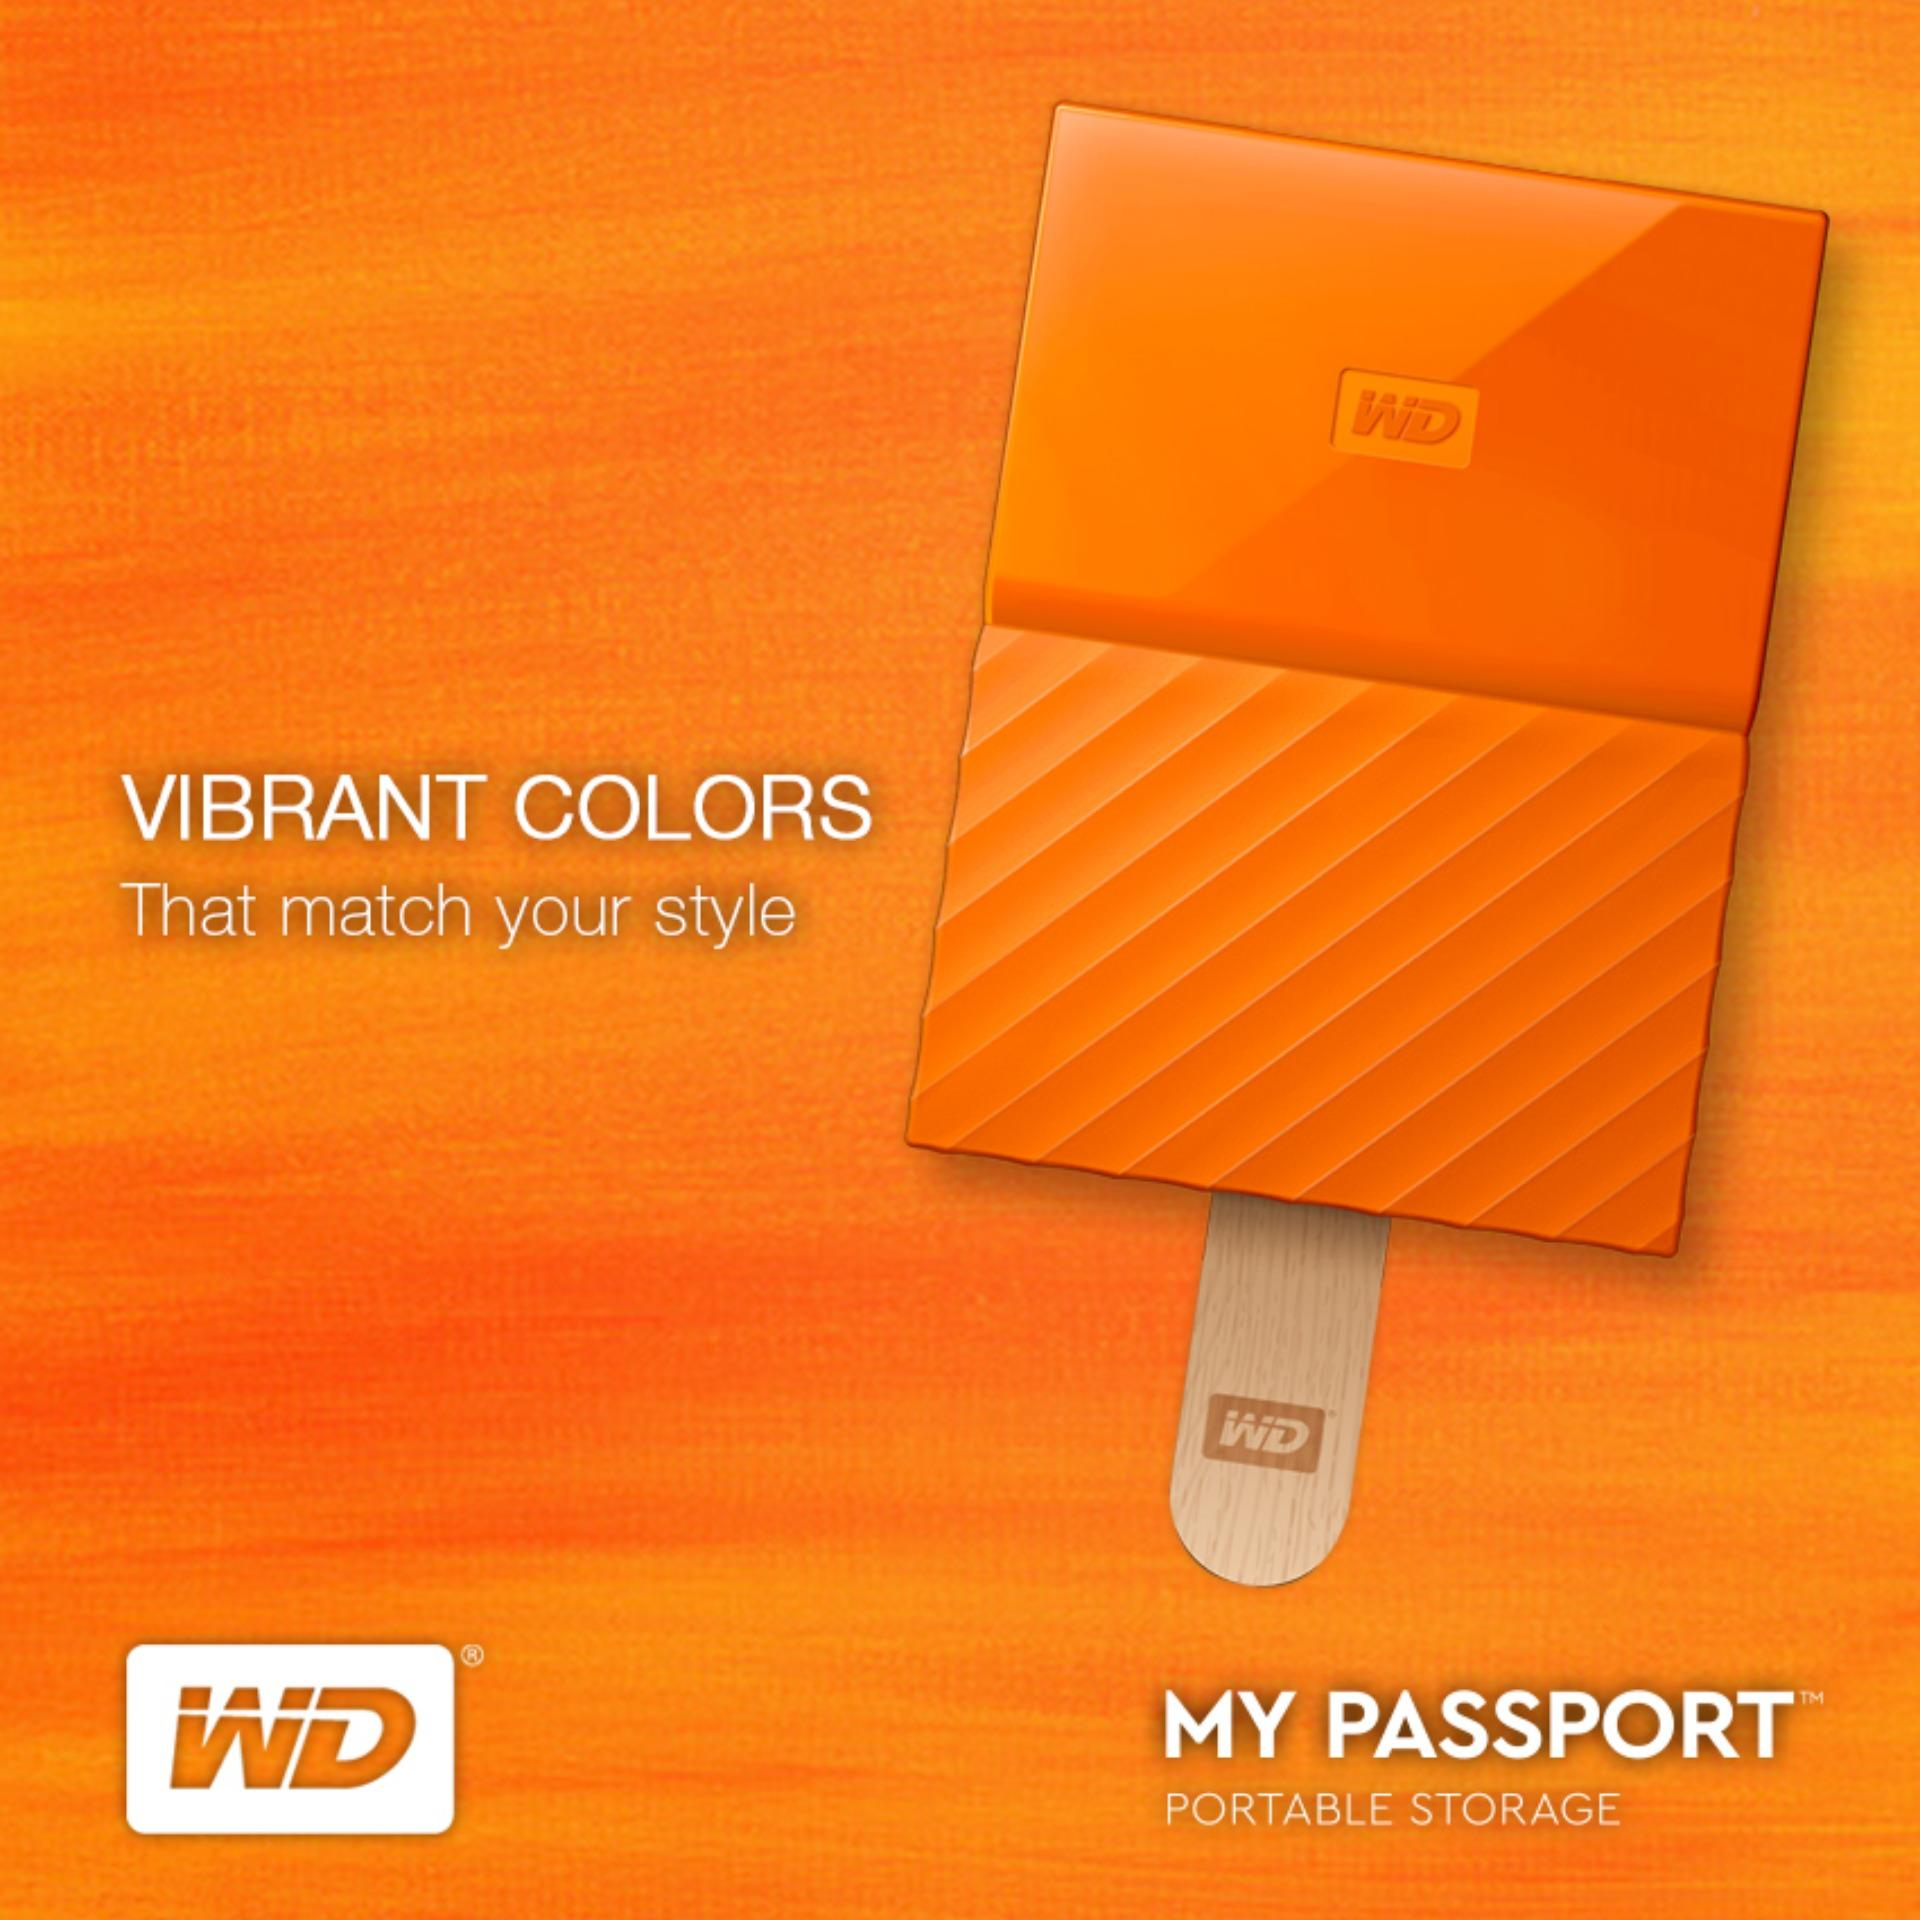 Wd My Passport 1tb Philippines 25 Usb 30 Portable External Hard Drive Wdbynn0010bor Wesn